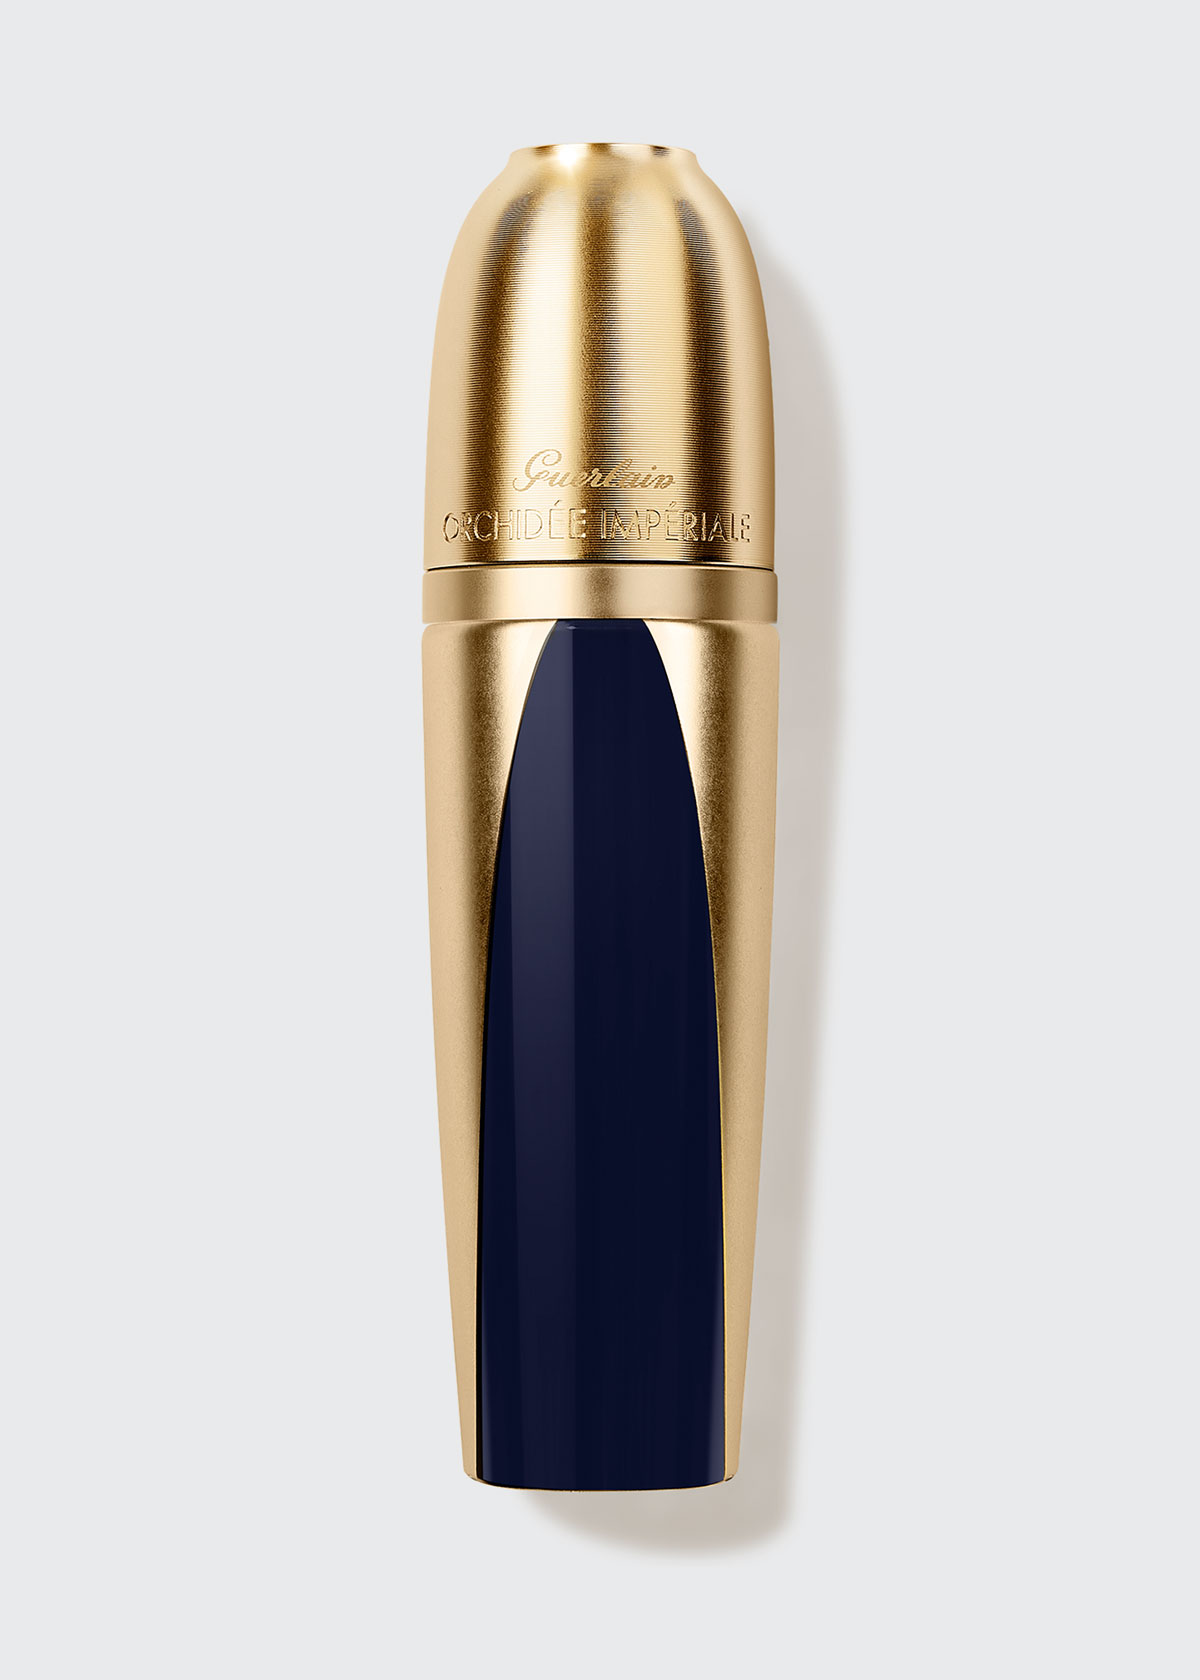 Guerlain ORCHIDEE IMPERIALE LONGEVITY CONCENTRATE SERUM, 1.0 OZ. / 30 ML